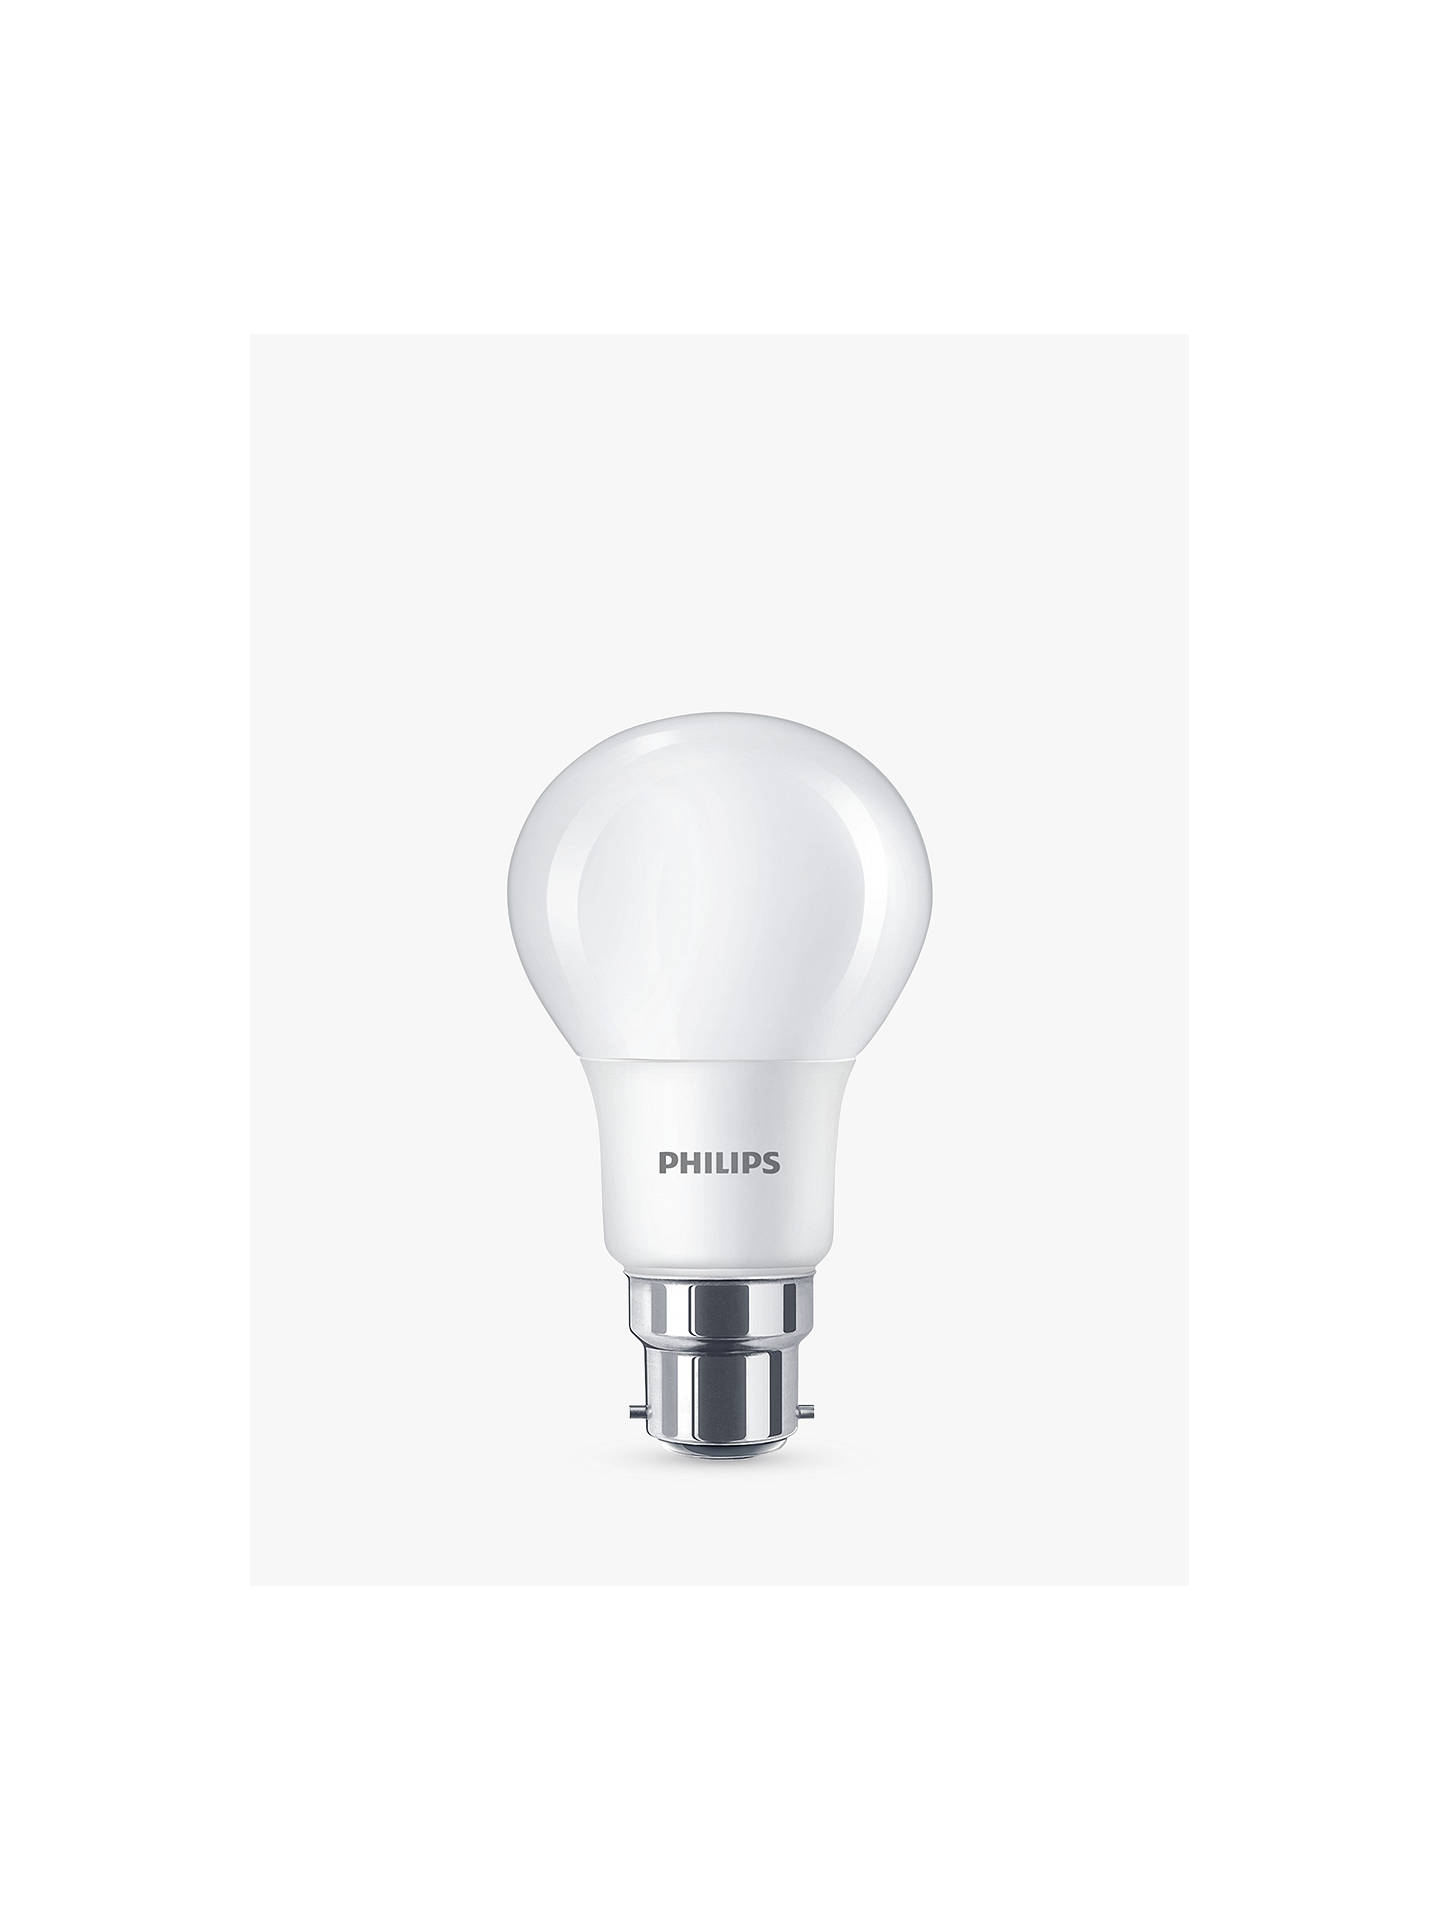 Buy Philips 7.5W BC LED Classic Cool White Light Bulb, Frosted, 4000K Online at johnlewis.com